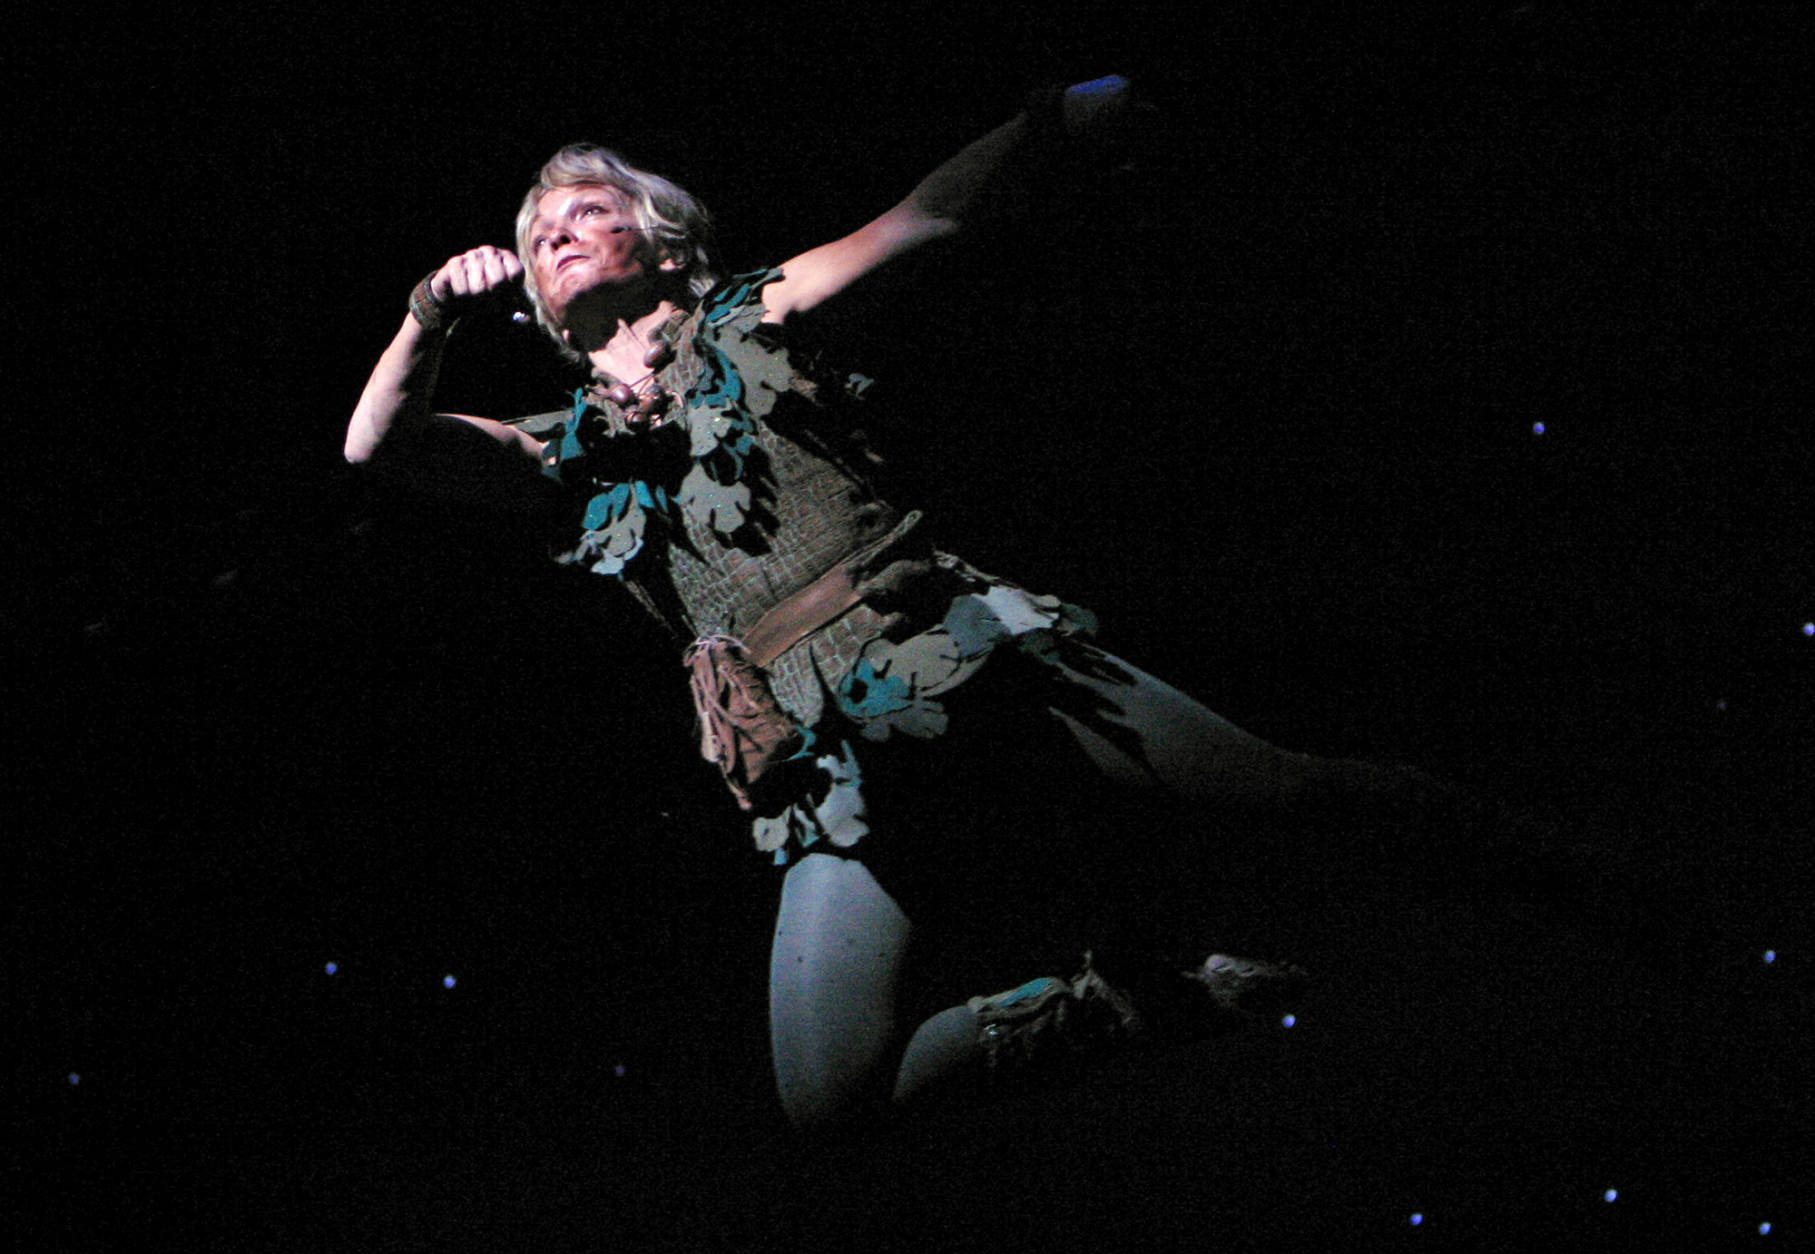 """Former Olympic gymnast and Broadway star Cathy Rigby, who is launching a nationwide, yearlong tour, performs as """"Peter Pan"""" at La Mirada Theater for the Performing Arts in La Mirada, Calif. Sept. 24, 2004. Rigby,  51, says this will be the last time she plays the role.  (AP Photo/Stefano Paltera)"""